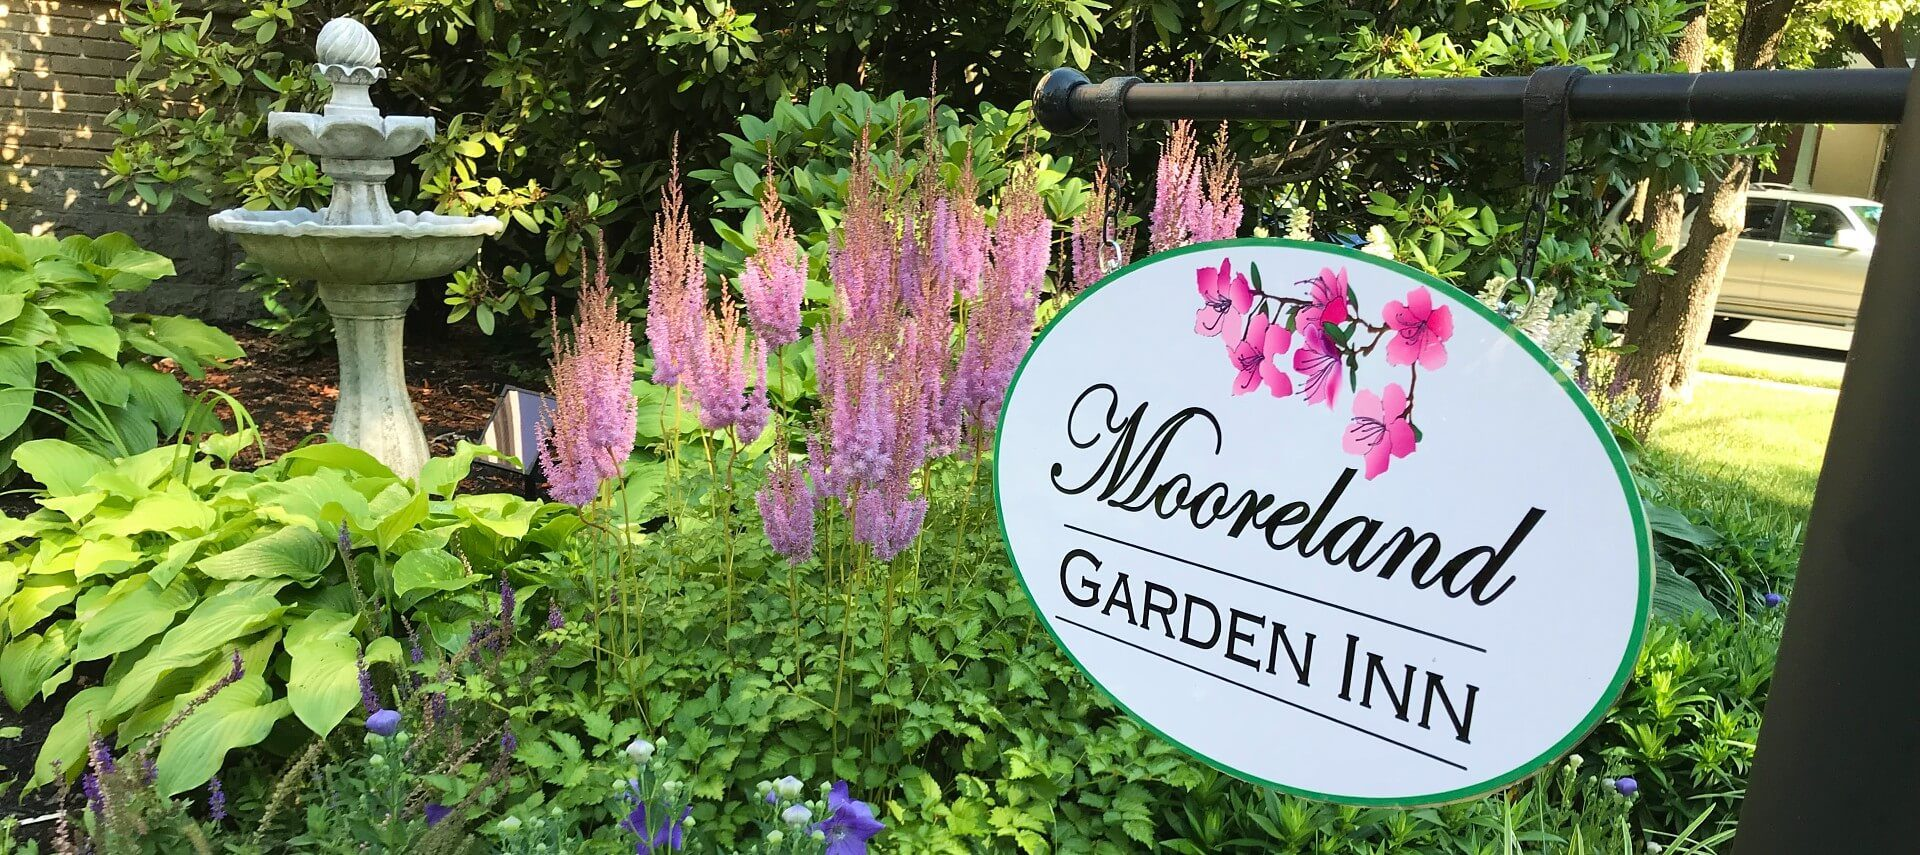 Large white oval business sign with black text hanging over a garden bed of pink and purple flowers and water fountain